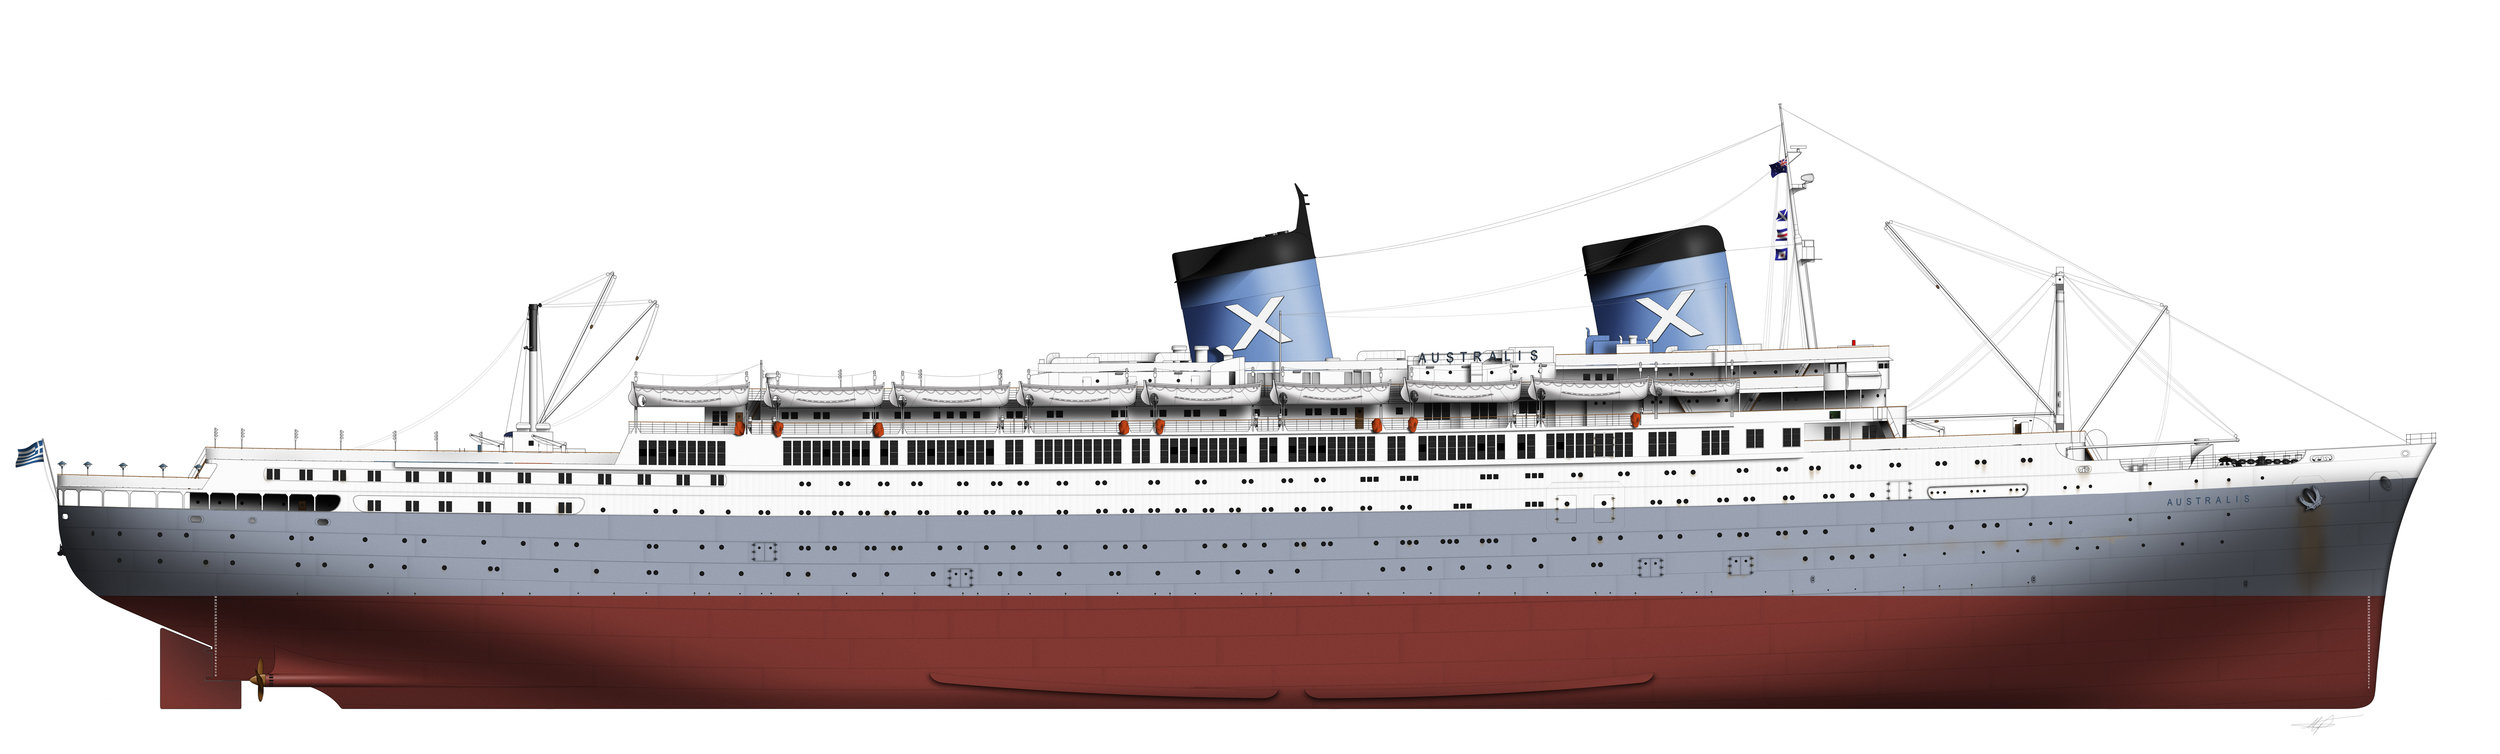 A week or more of drawing and the ship is ready! In this case, the SS Australis of Chandris Lines.